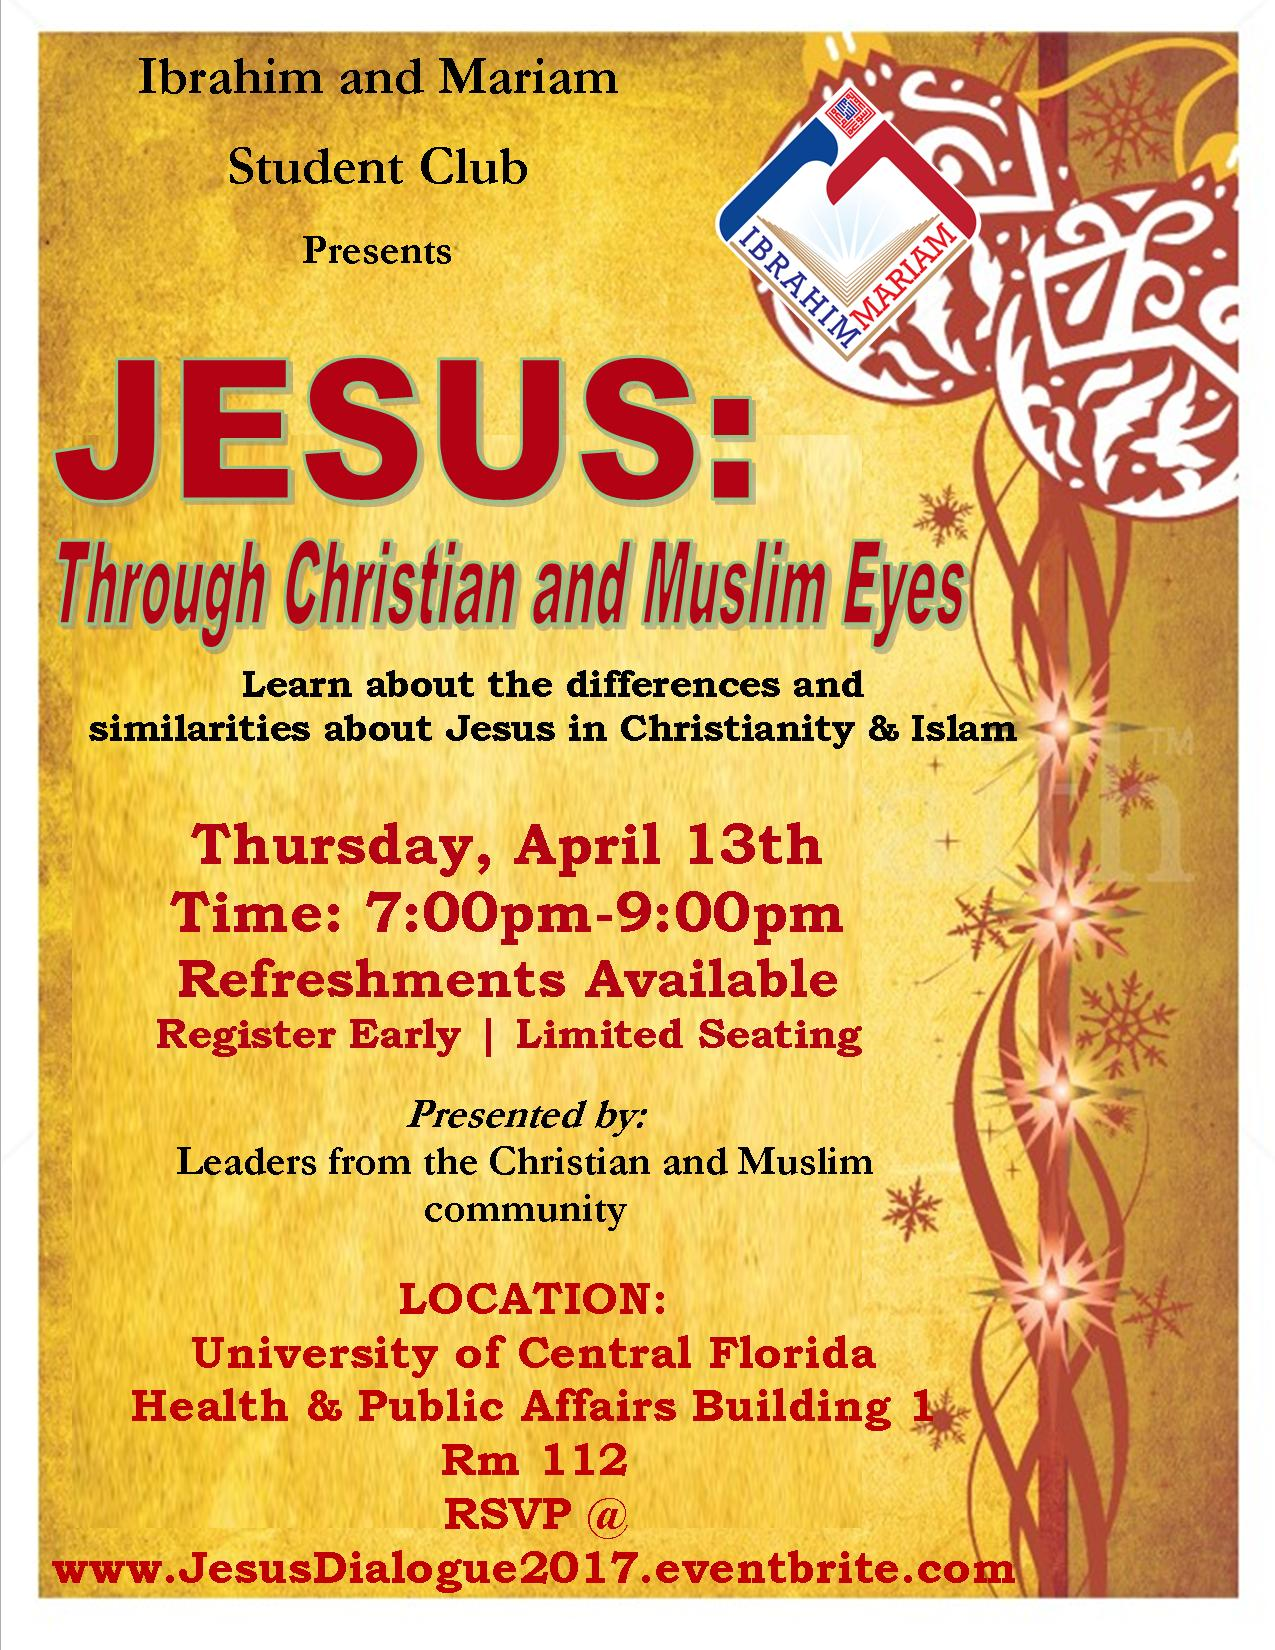 a christian view of islam essays on dialogue Poetry, art, film, and dialogue with spiritual leaders, practitioners, and teachers   the mission of the festival of faiths is to promote interfaith understanding,.